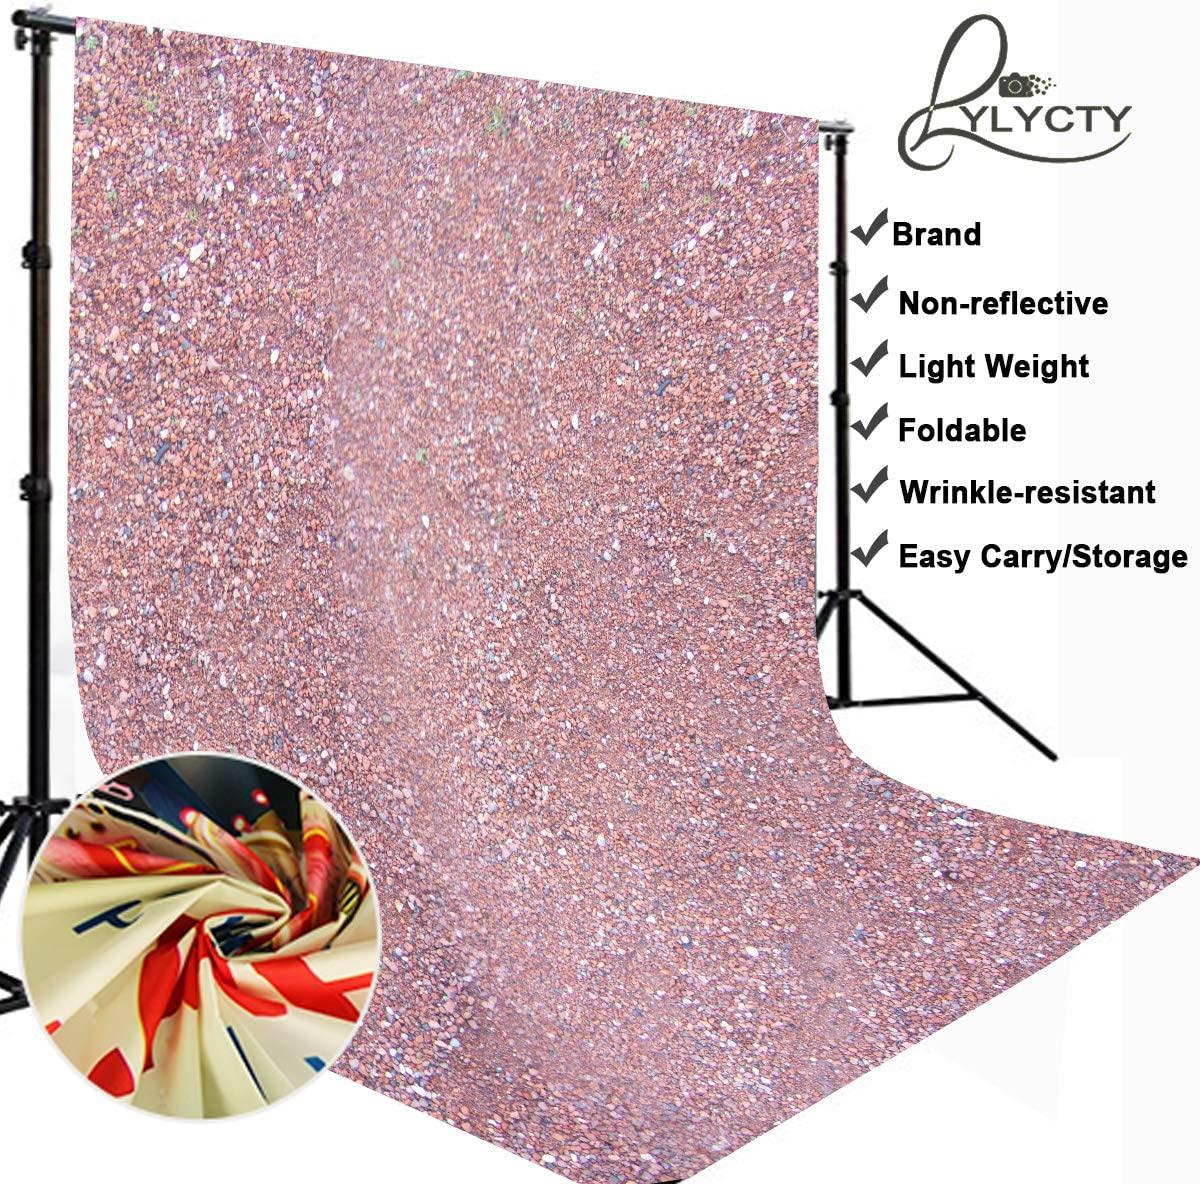 LYLYCTY 10x10 Red Porphyry Backdrop Millennial Pink Baby Newborn Children Party Decorations for Pictures Photography Props LY189